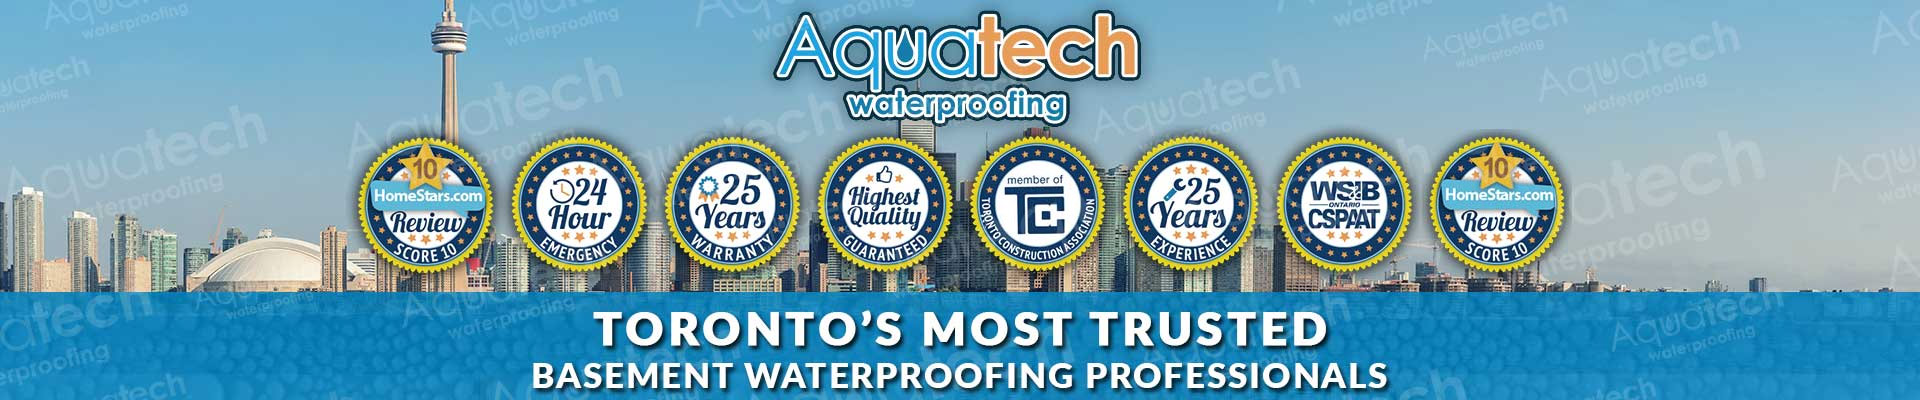 torontos most trusted basement waterproofing professionals